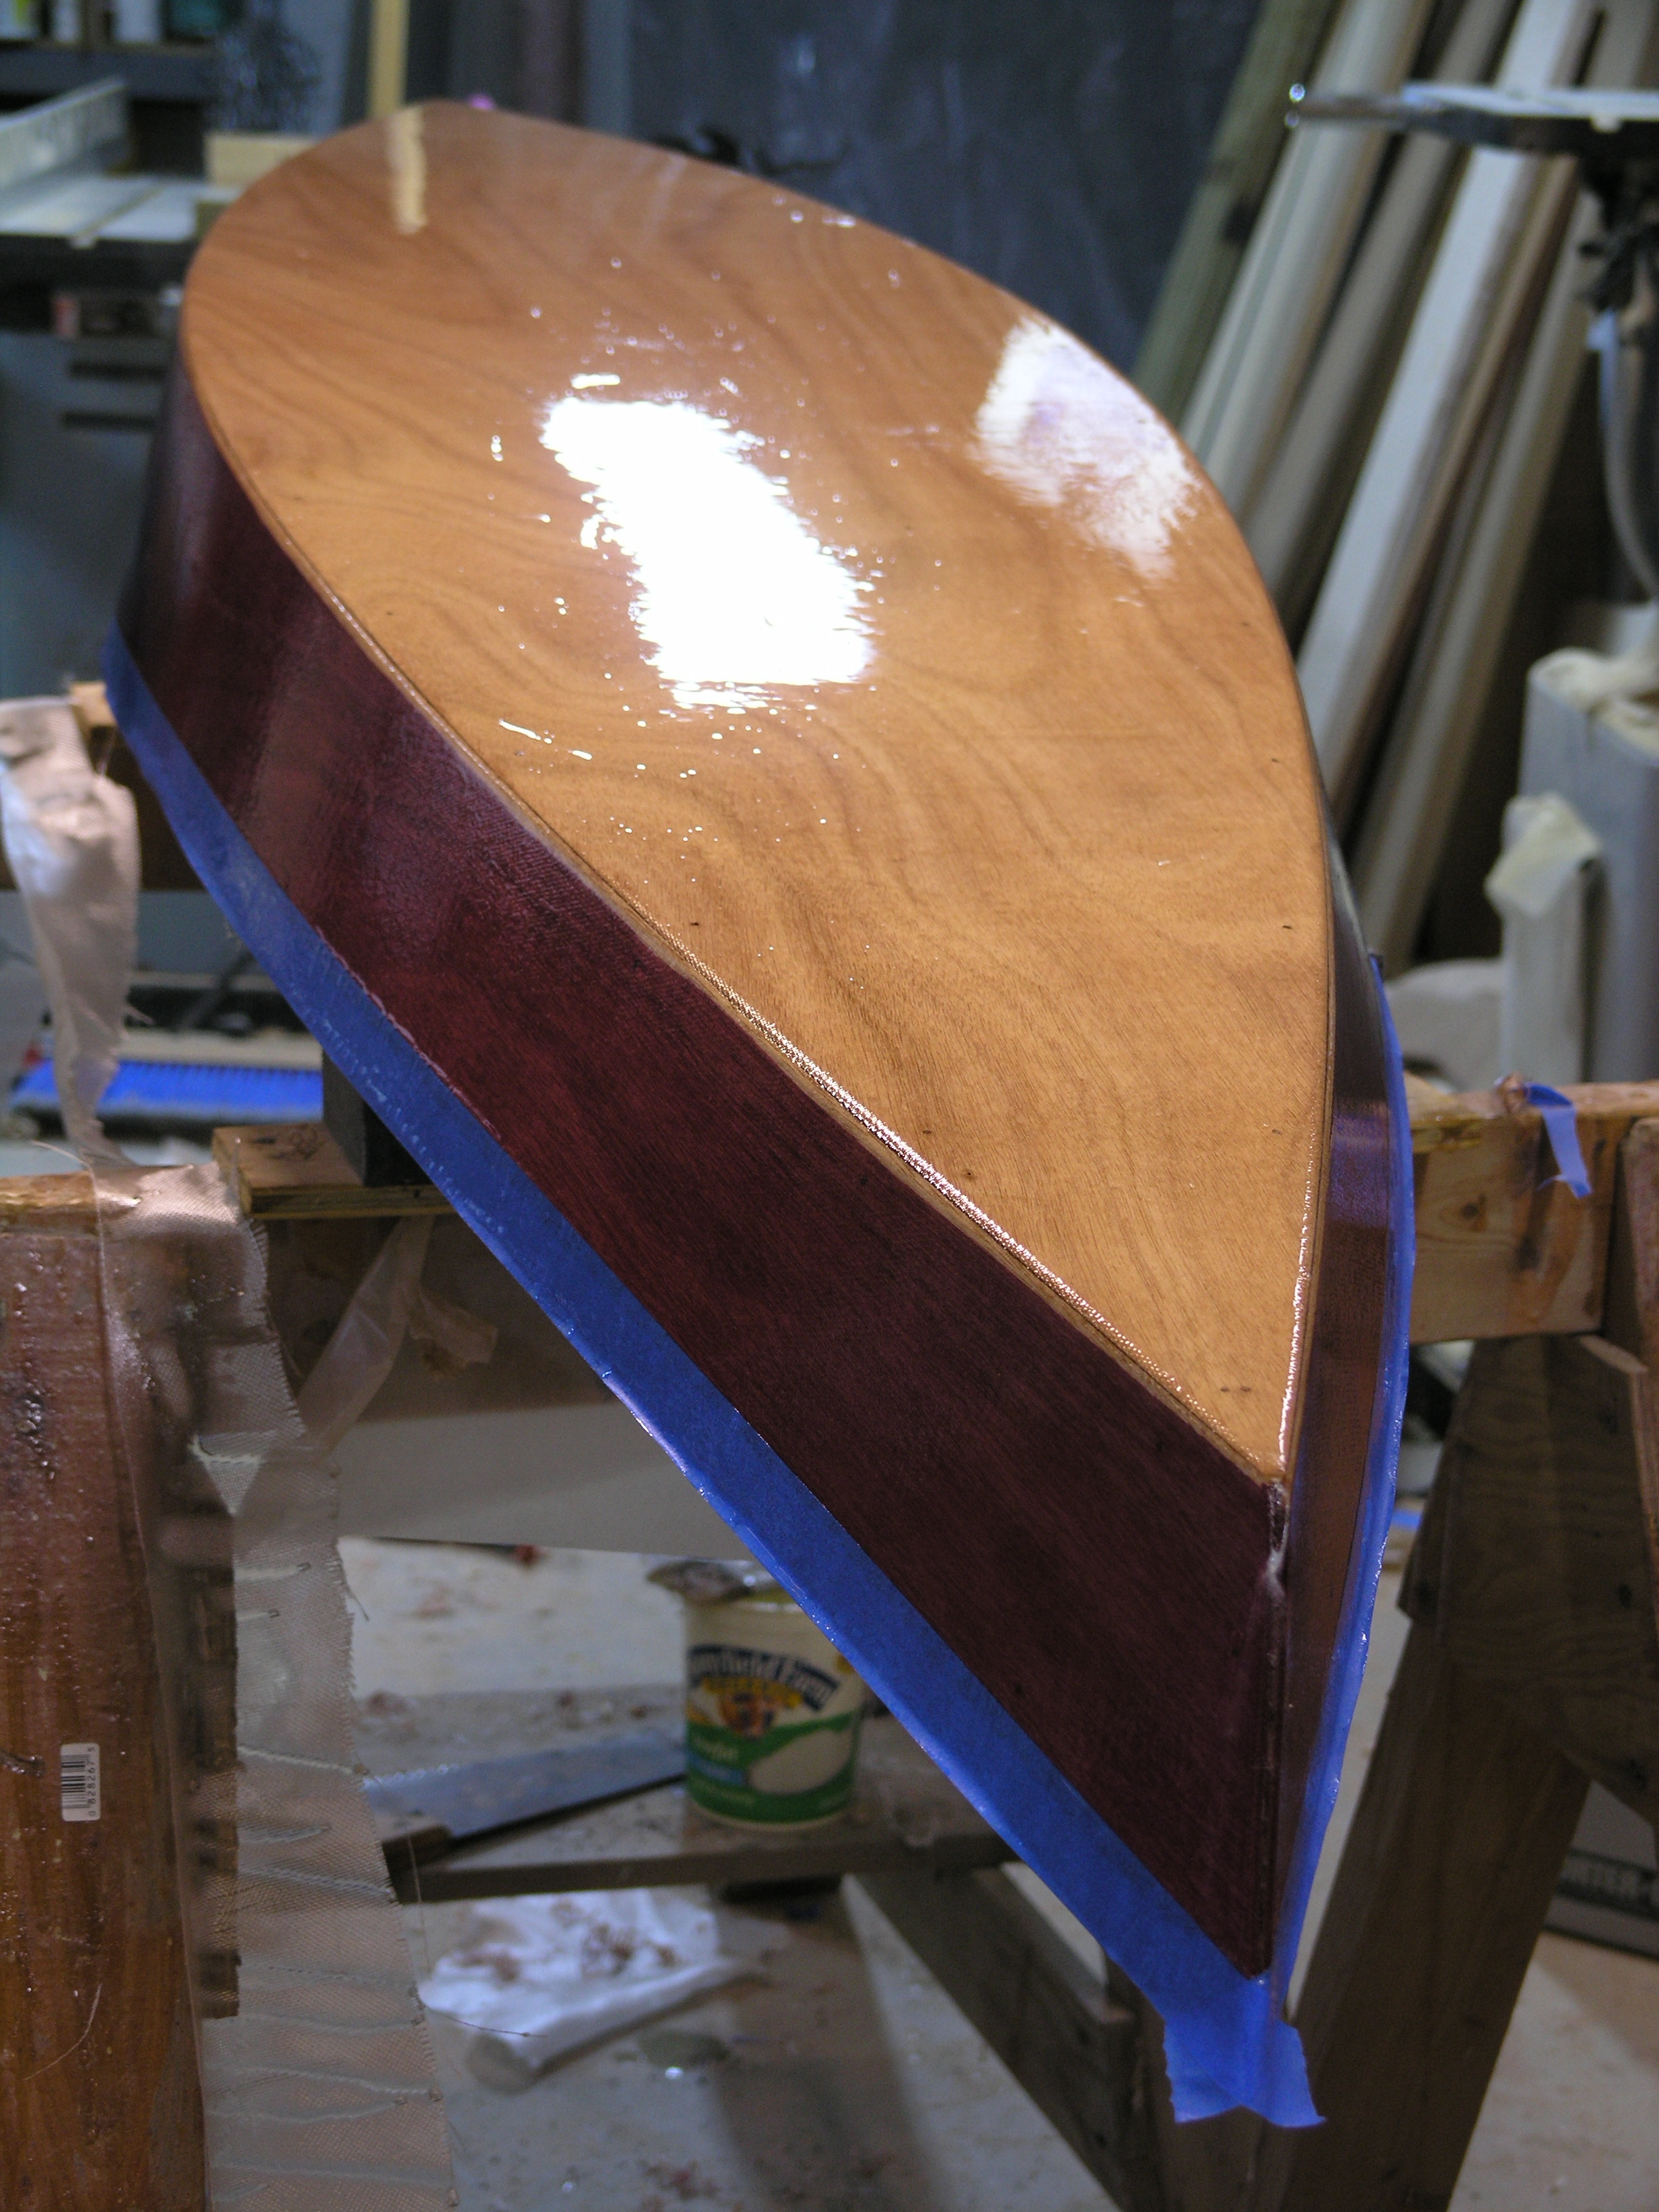 Building A Child Sized Kayak From A Single Sheet Of